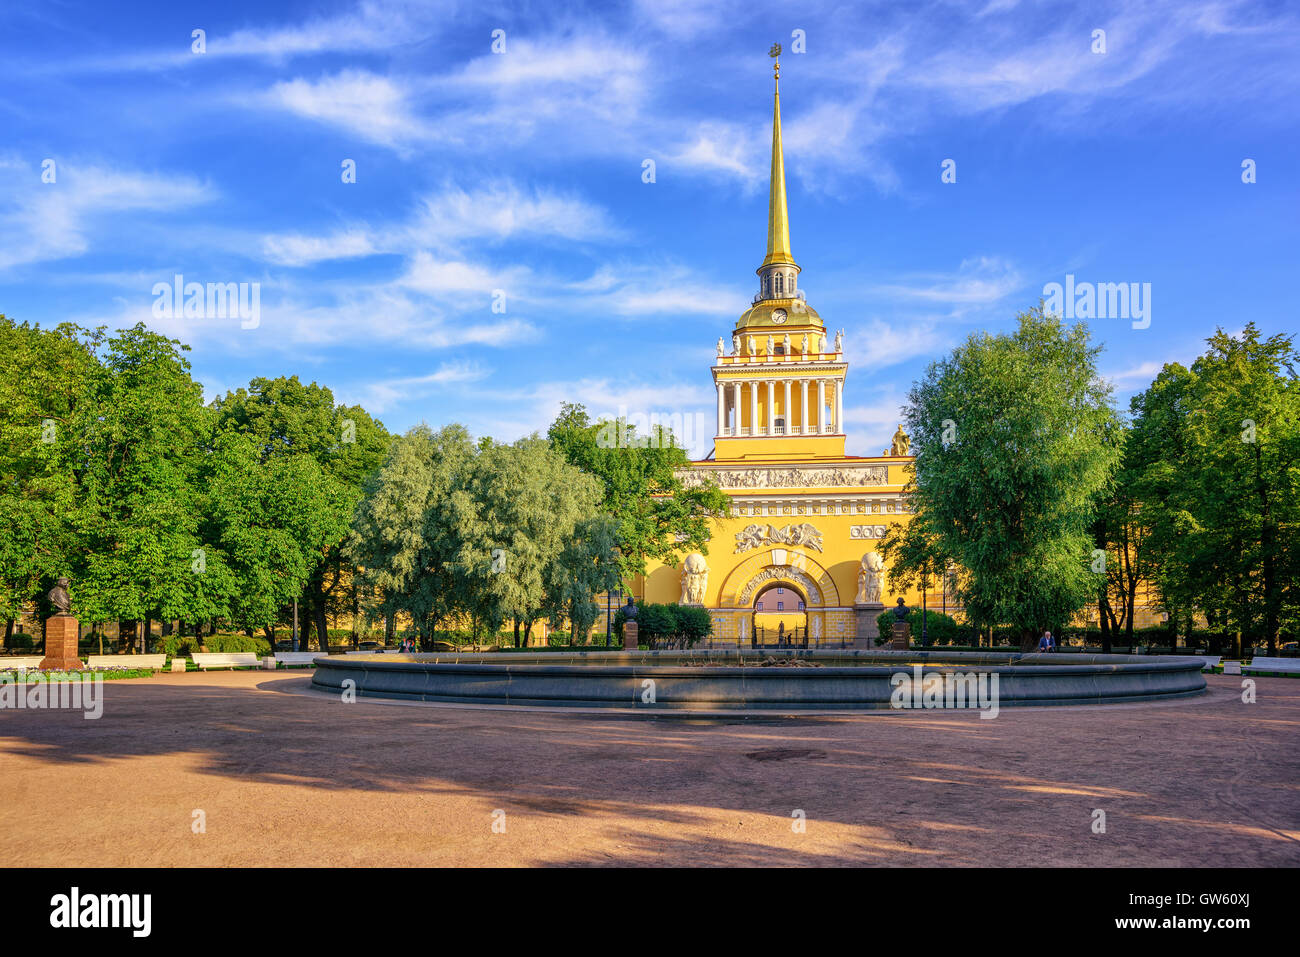 The golden spire of neoclassical Admiralty Building is iconic view in St Petersburg, Russia Stock Photo